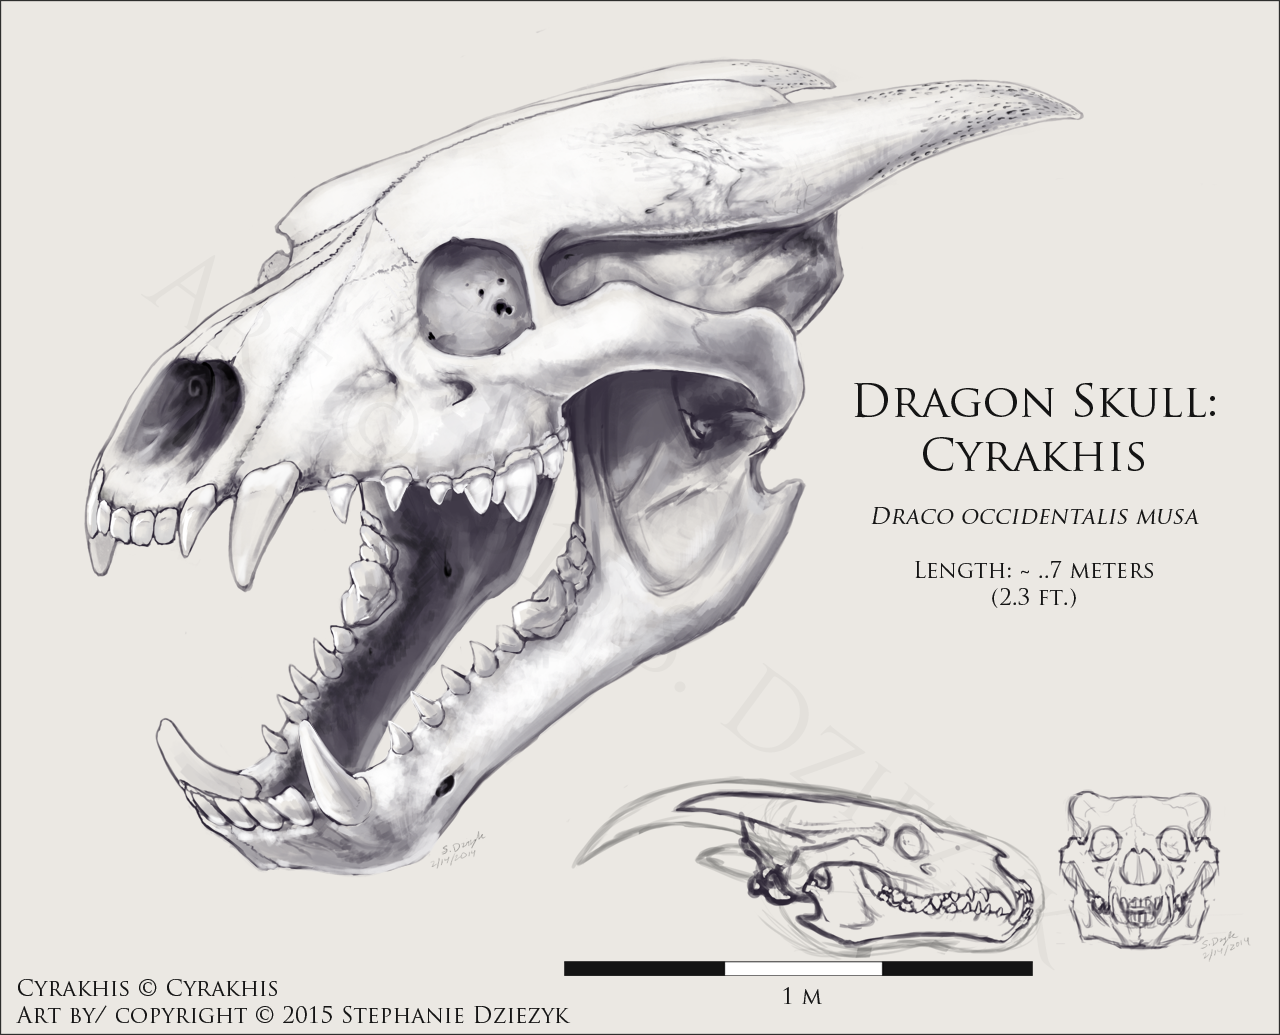 Drawn sleleton dragon Skull Skull on DeviantArt LeccathuFurvicael